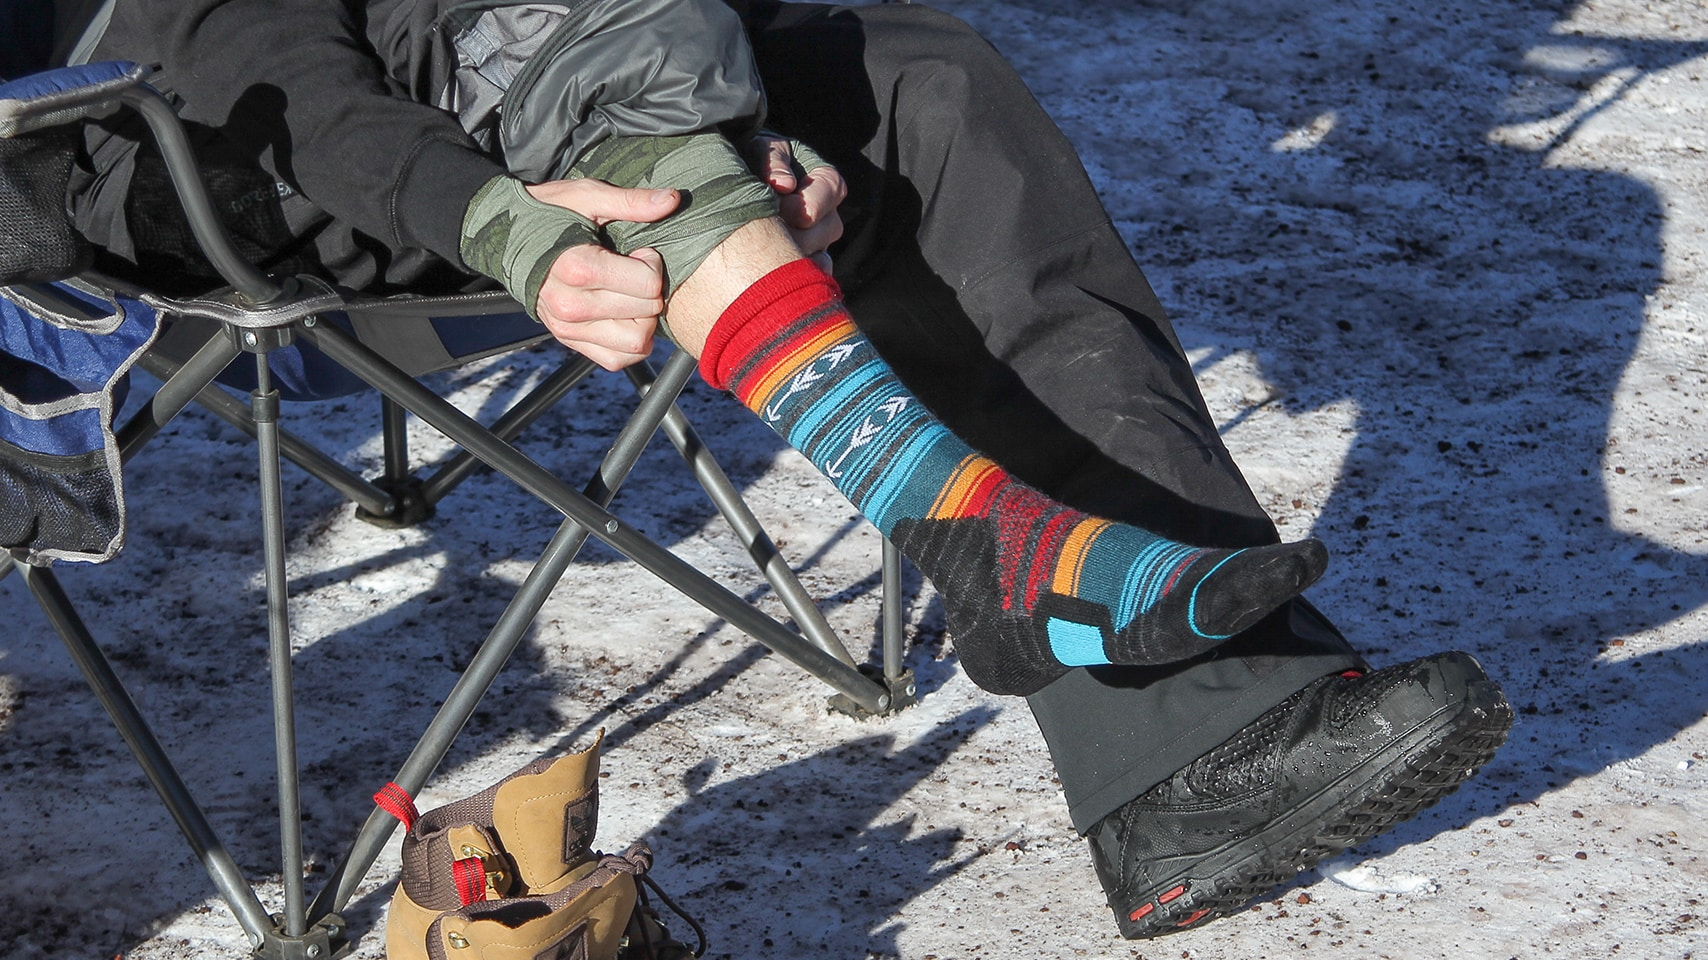 8d4f1c9ec3ebc There is a reason that snowboard specific socks were created. Wearing your  everyday cotton socks on the mountain can lead to improper boot fit, frozen  feet, ...